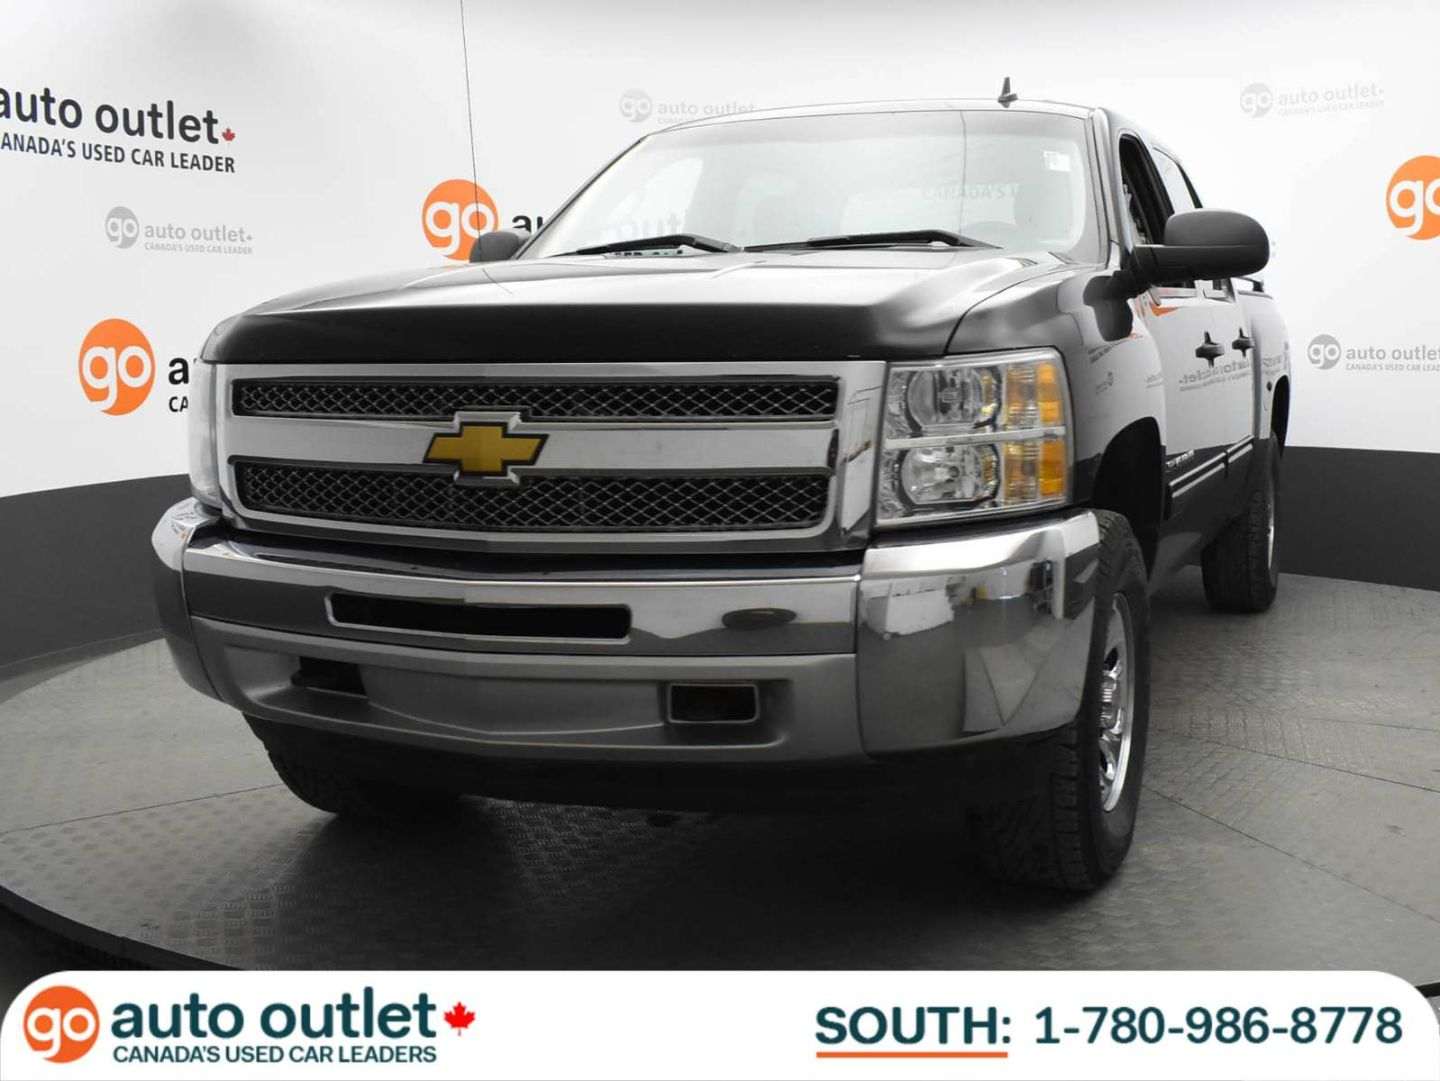 2012 Chevrolet Silverado 1500 LT for sale in Leduc, Alberta